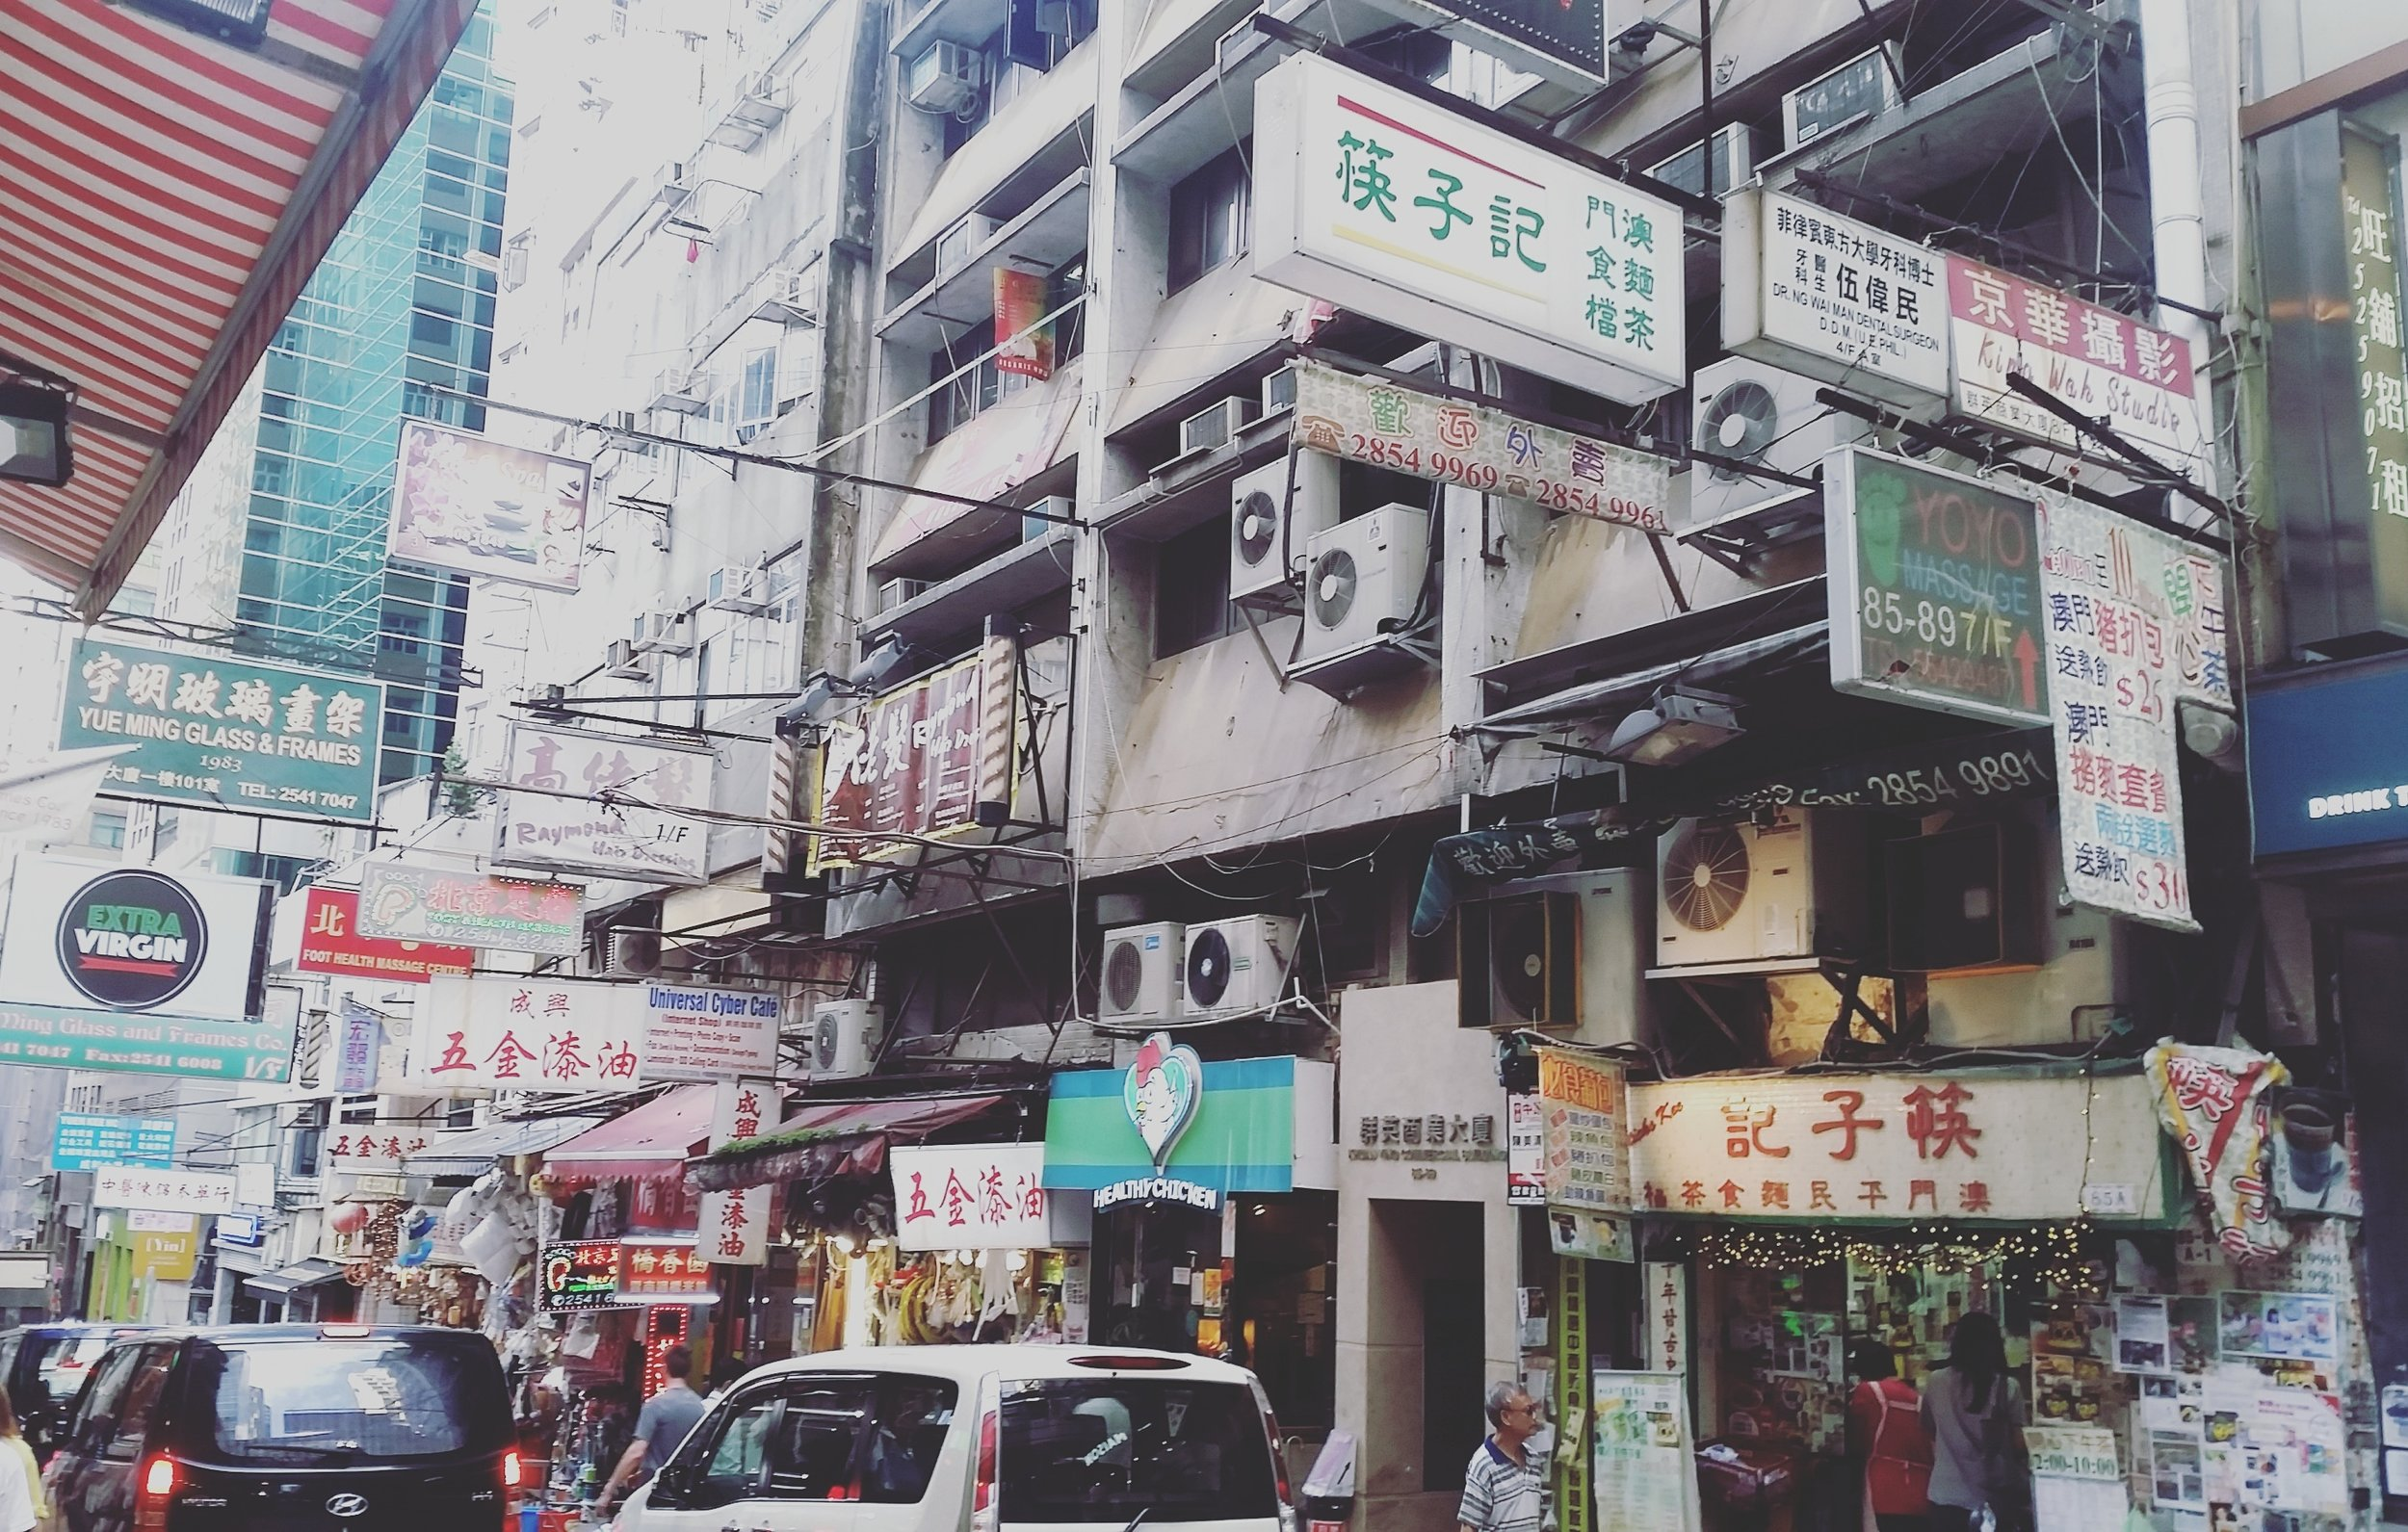 October 20 2016, Hong Kong.